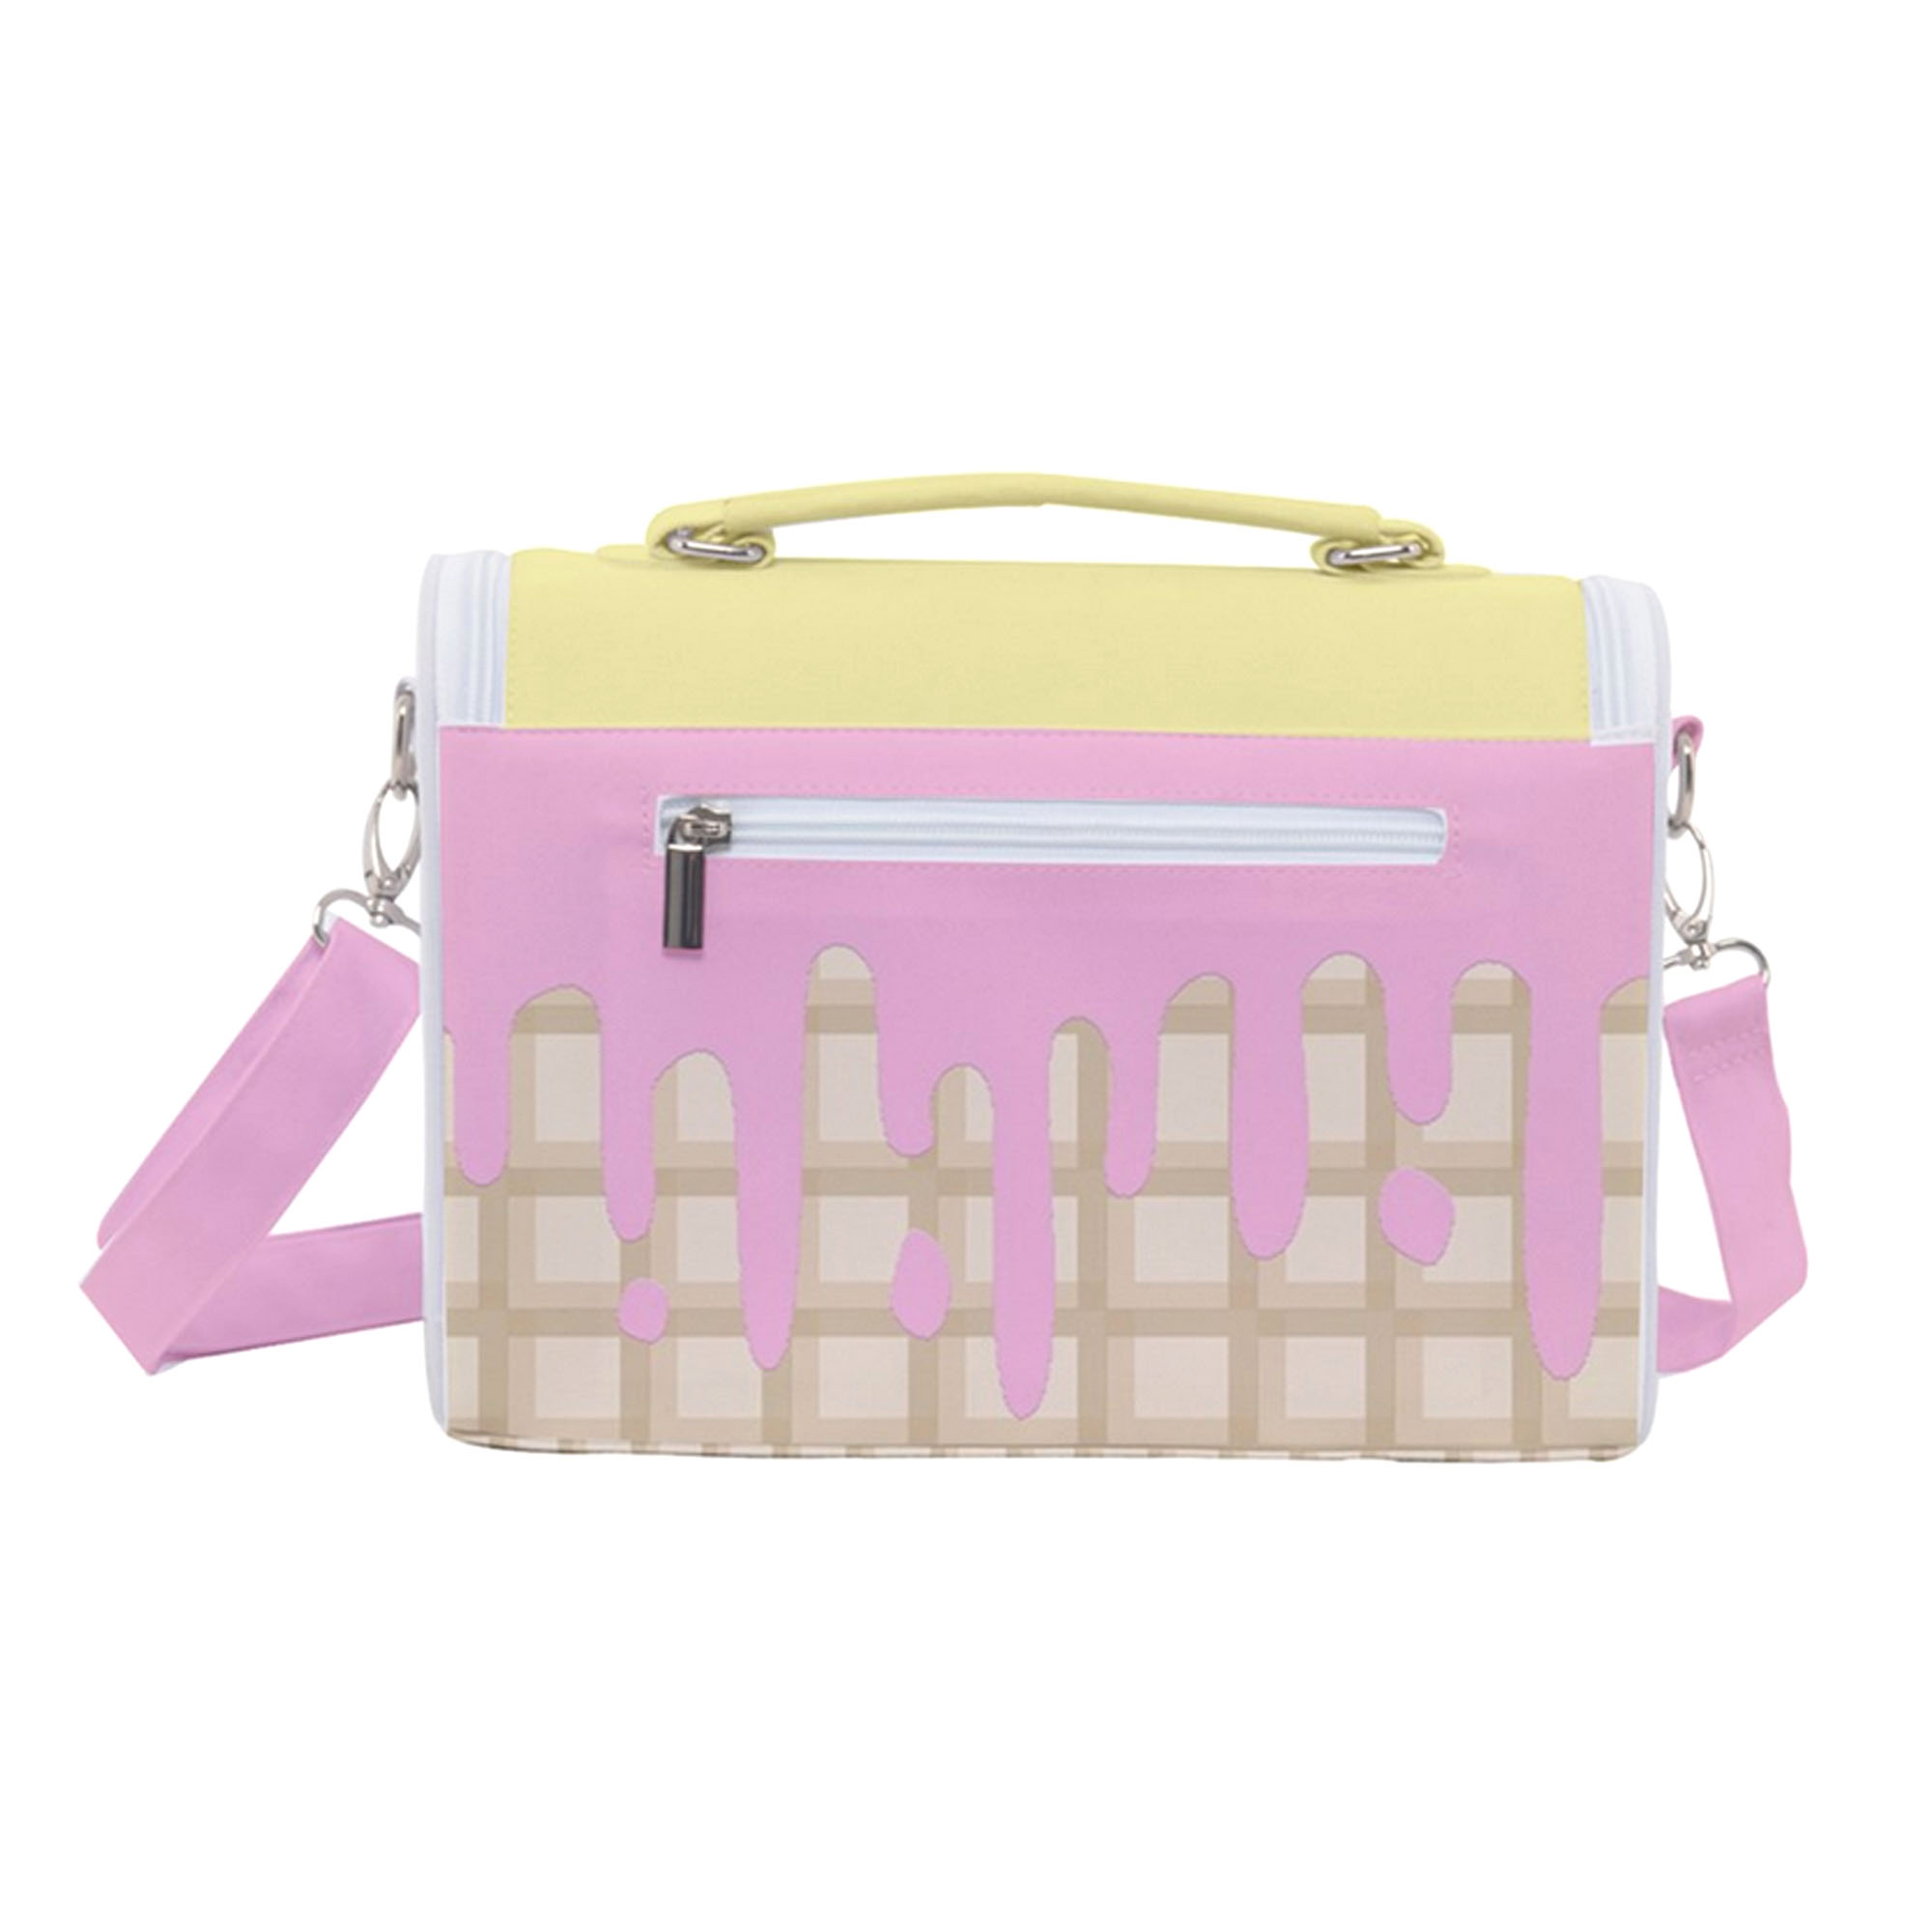 Kawaii Ice Cream Satchel Shoulder Bag -